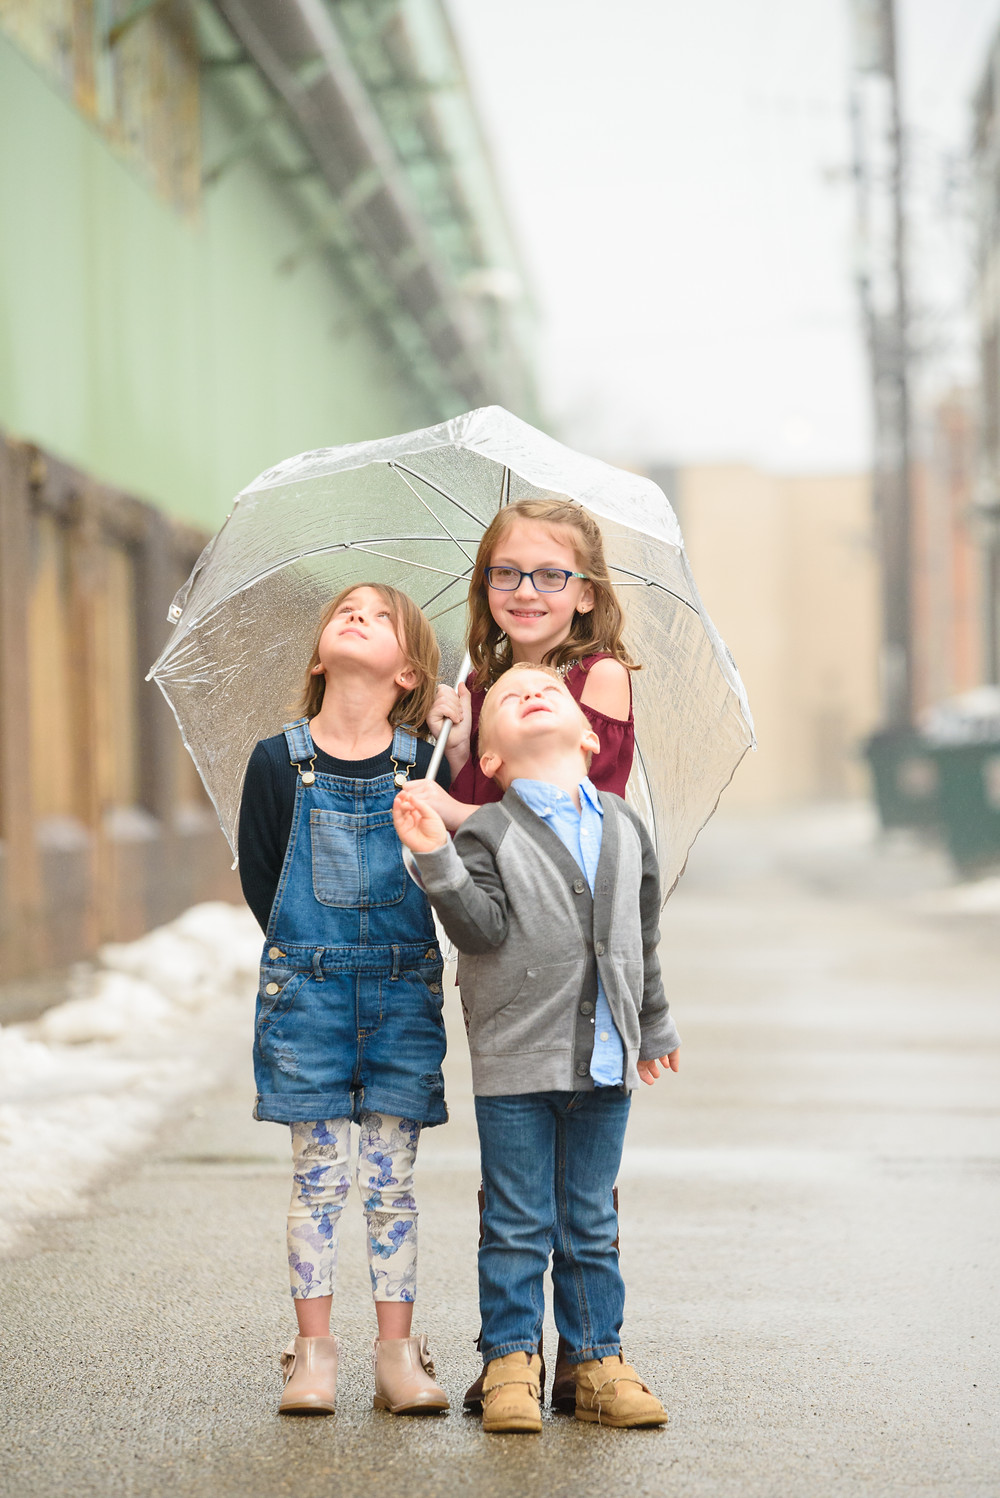 Three siblings laughing in the rain under a clear umbrella during their photo shoot in Weirton, Wv.